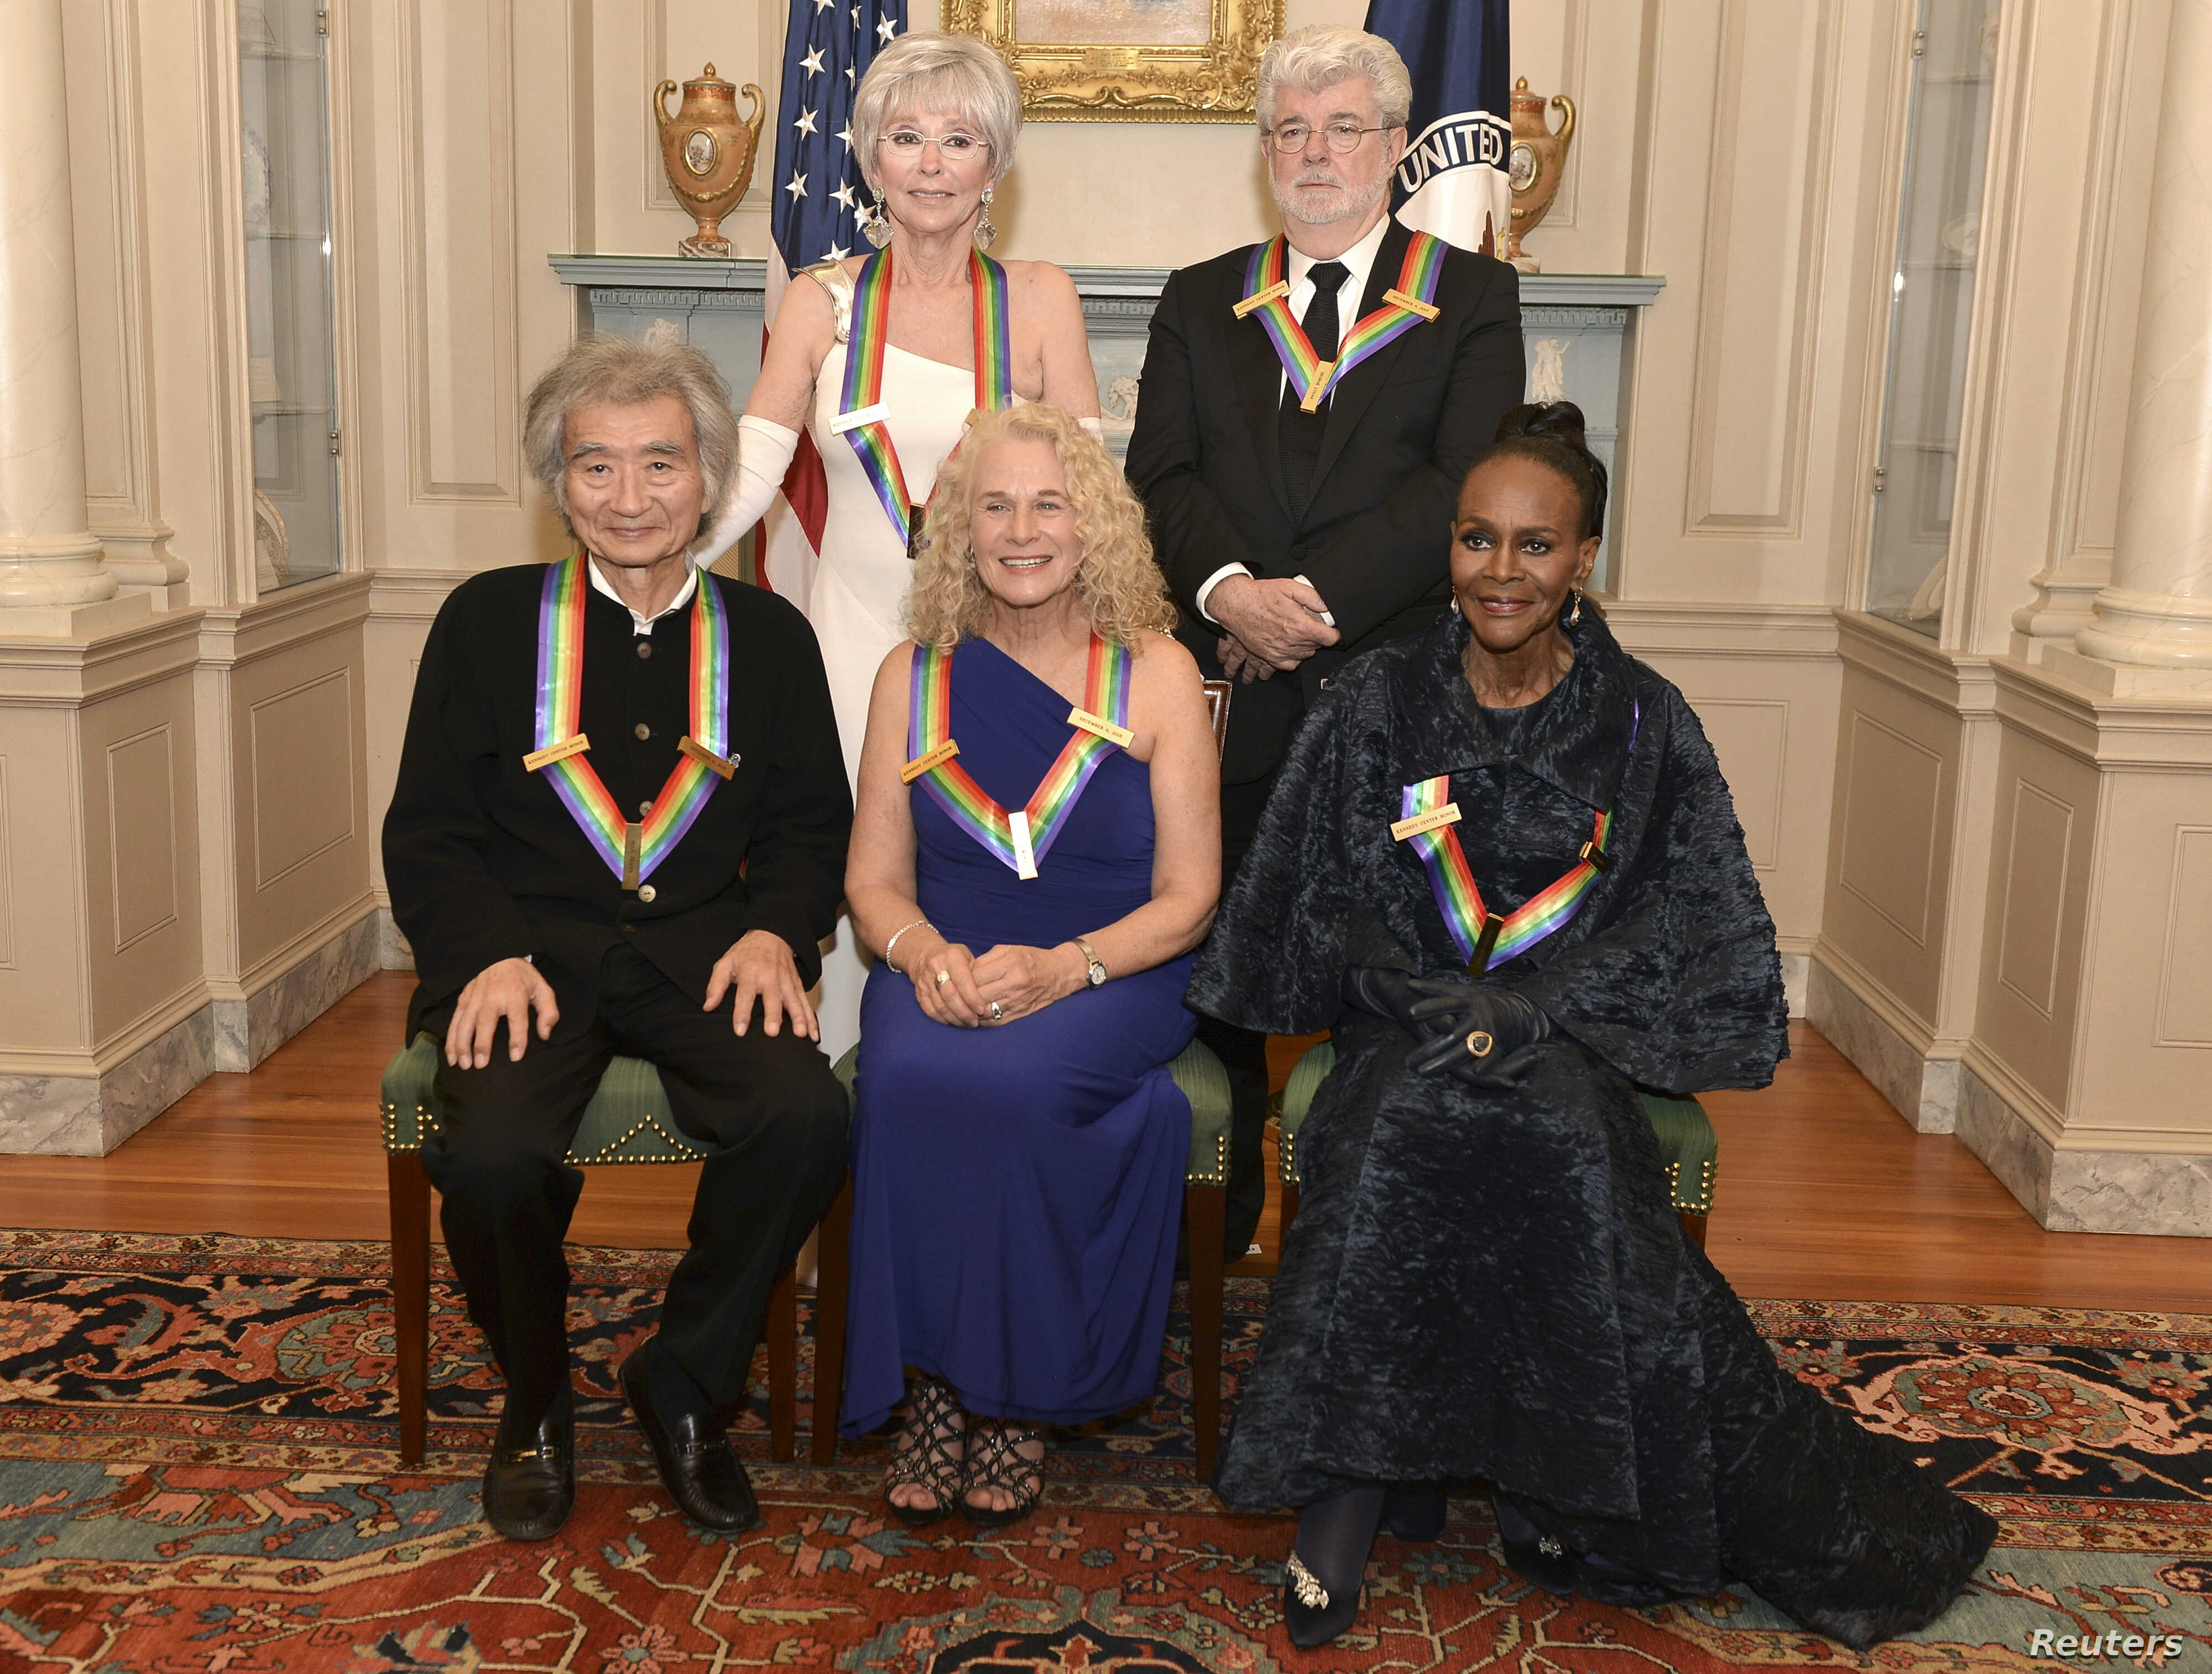 Kennedy Center Honorees (L-R, standing) actress and singer Rita Moreno, filmmaker George Lucas, (L-R, seated) Japanese conductor Seiji Ozawa, singer-songwriter Carole King and actress Cicely Tyson gather for a group photo after a gala dinner at the U...